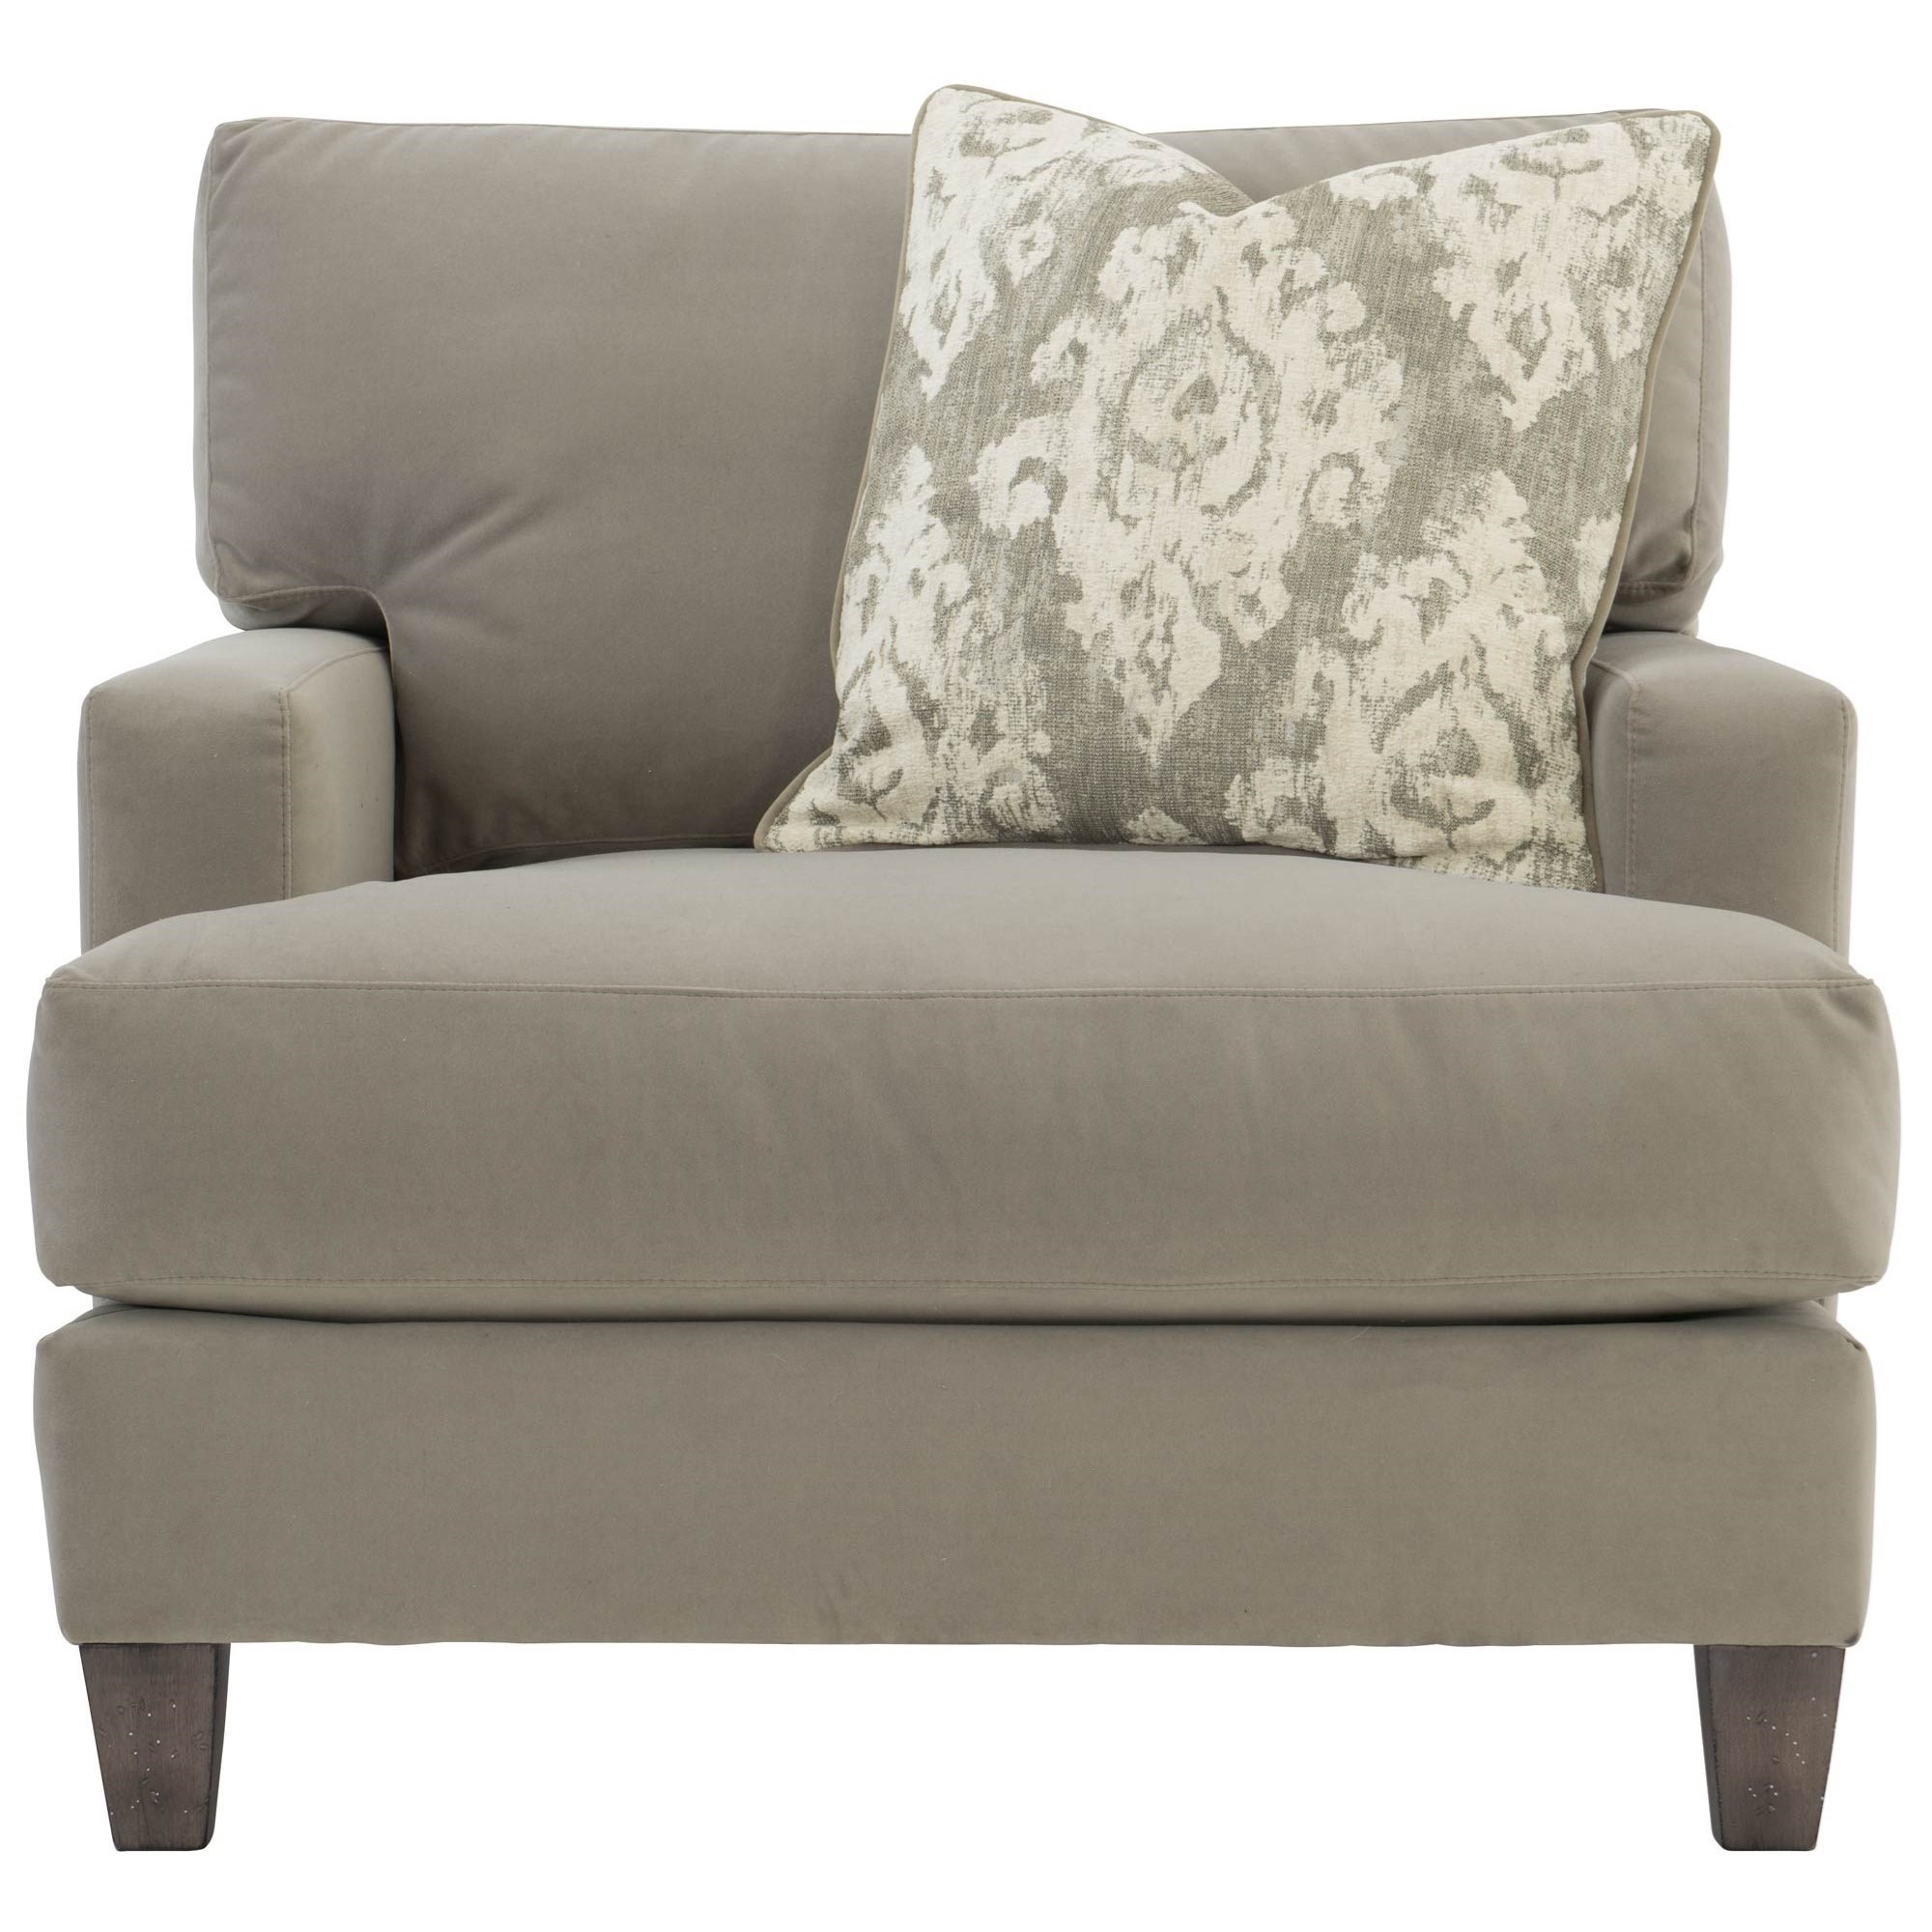 Mila Chair by Bernhardt at Fisher Home Furnishings